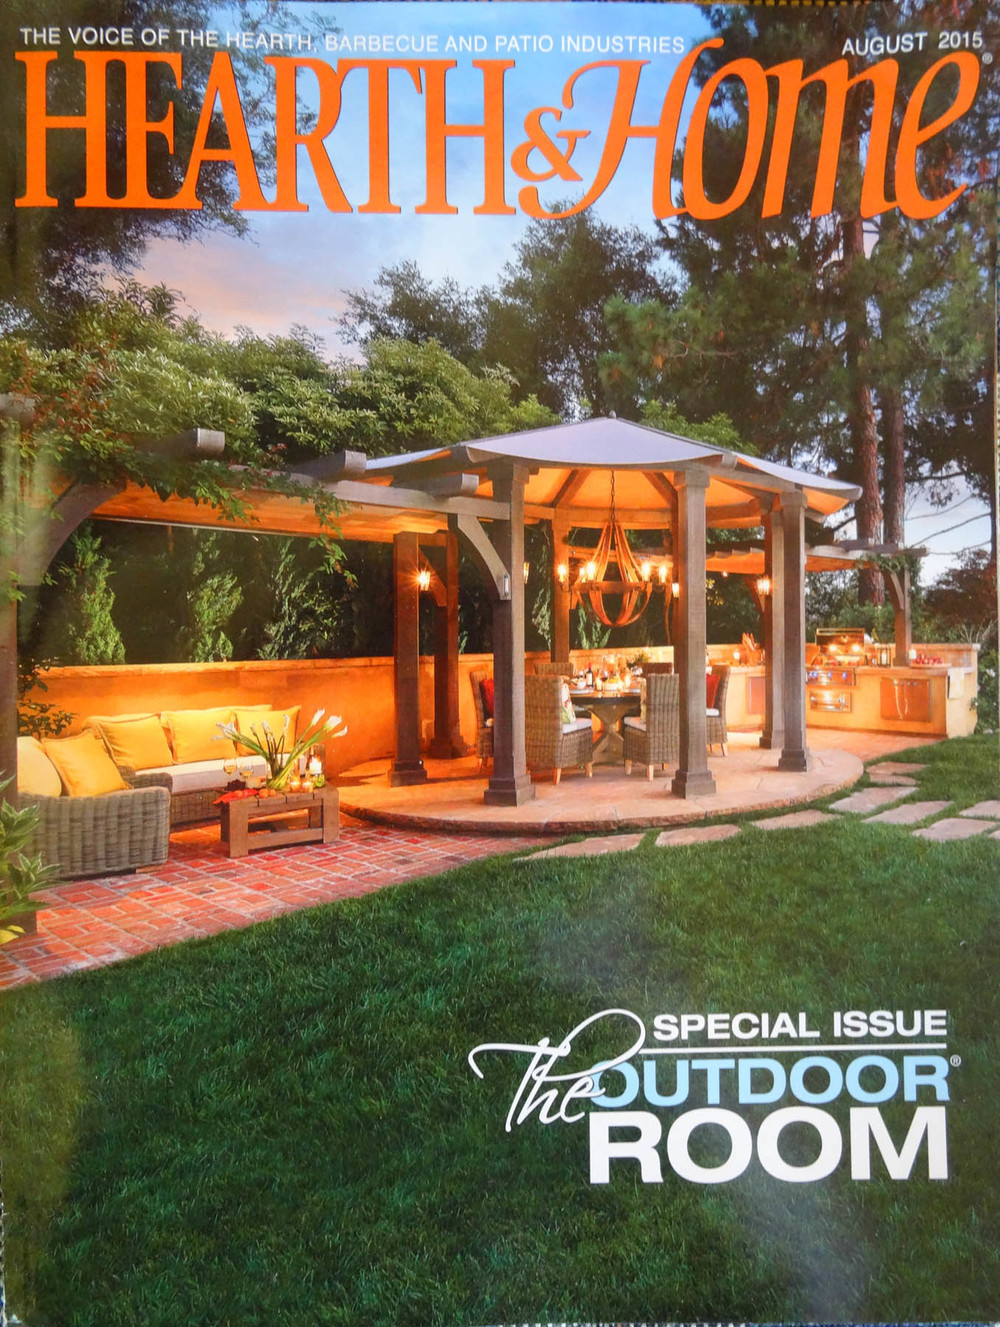 10a Hearth & Home Magazineweb.jpg